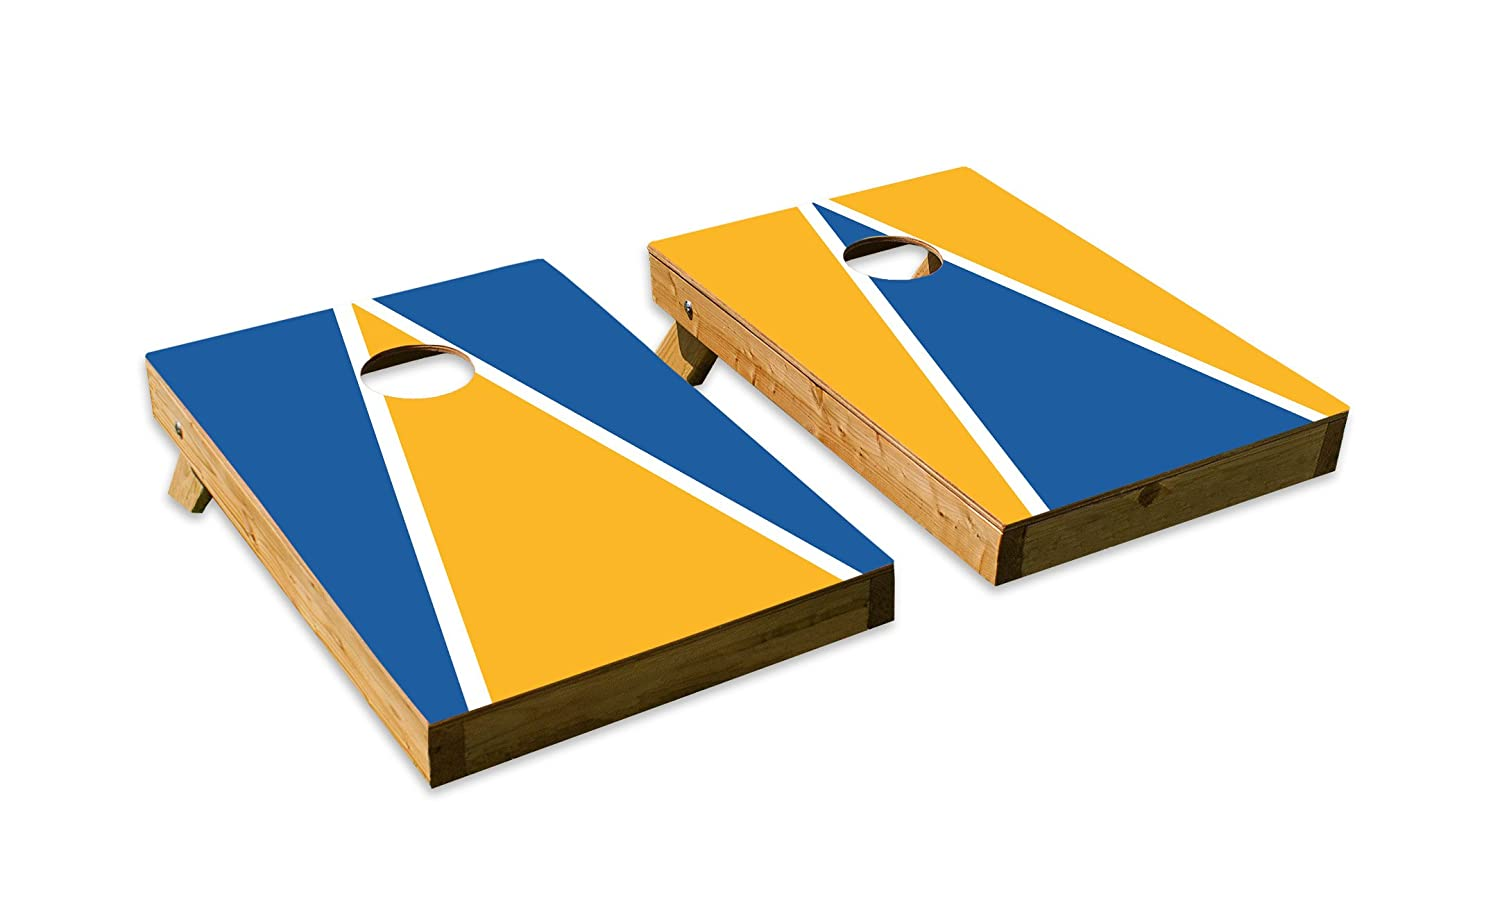 UCLA BruinsデザインCornhole/Bean Bag Tossボードセット – Made in USA with品質木製 – 2 ' x3 'テールゲートサイズ – Includes 8 corn-filled Beanバッグ  Tailgate